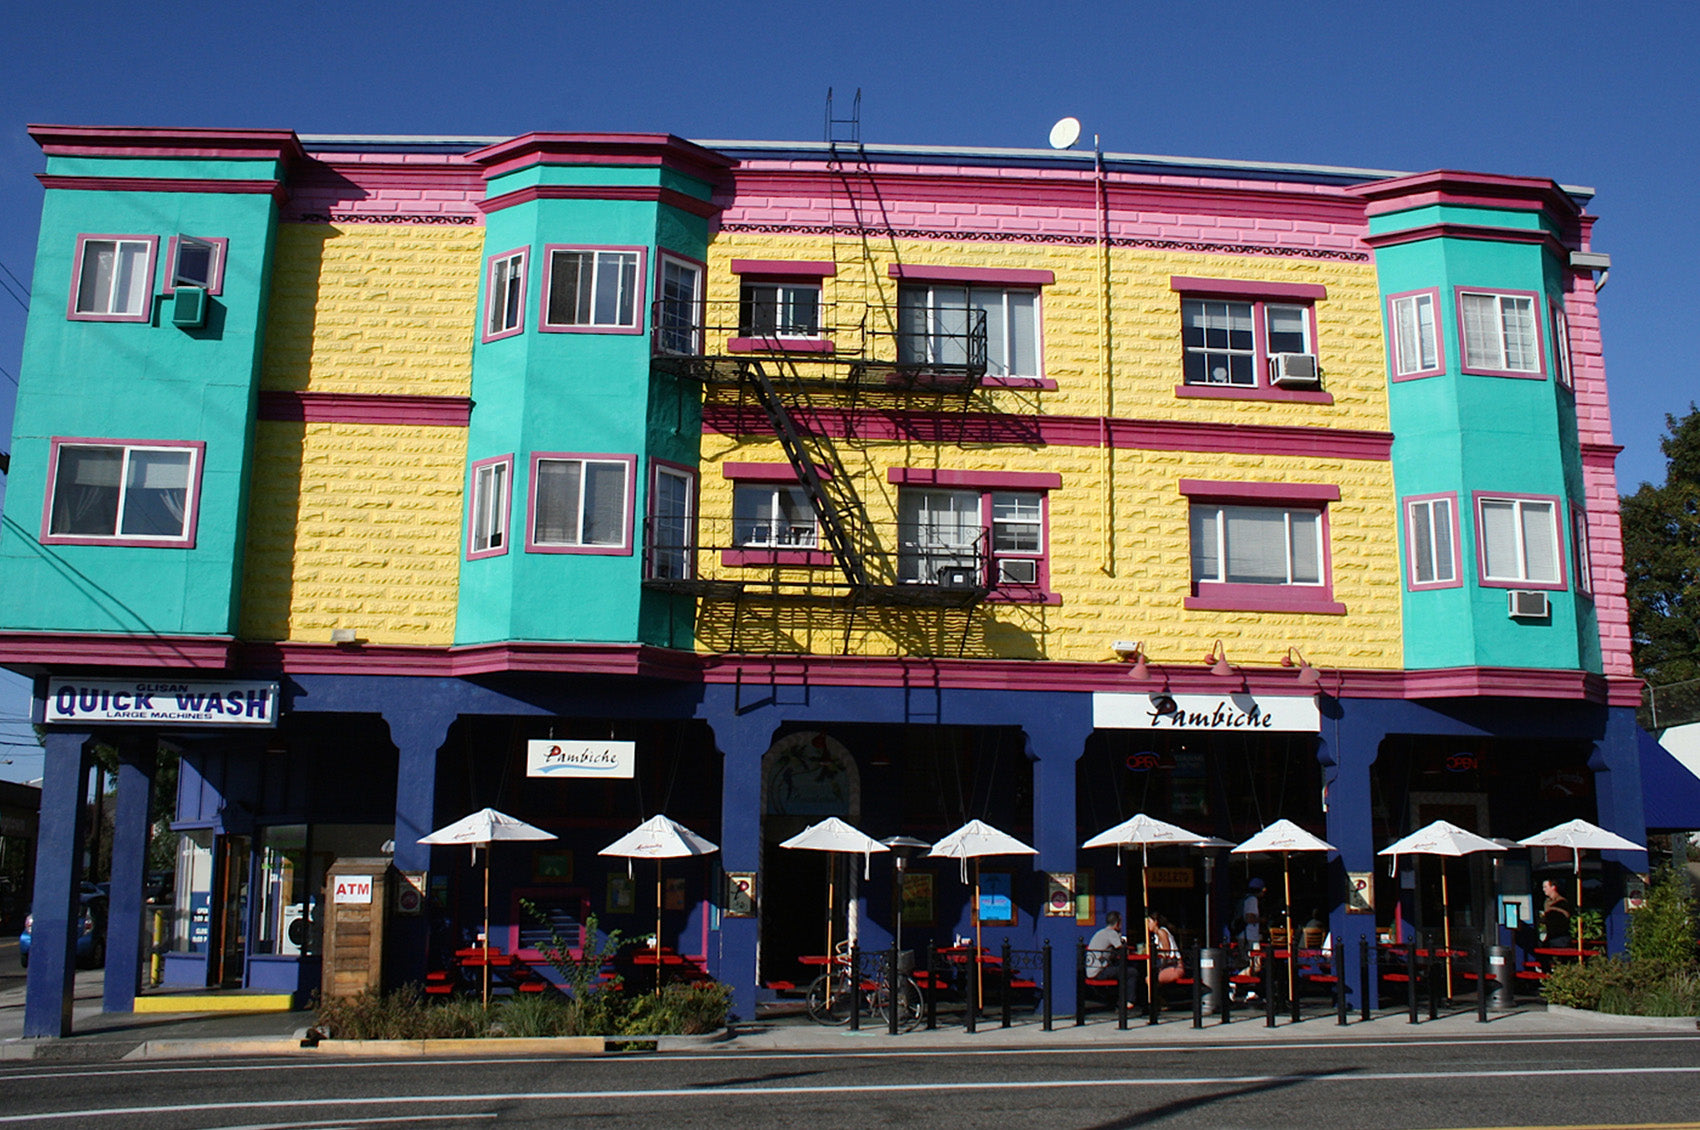 Exterior view of the colorful Pambiche restaurant.